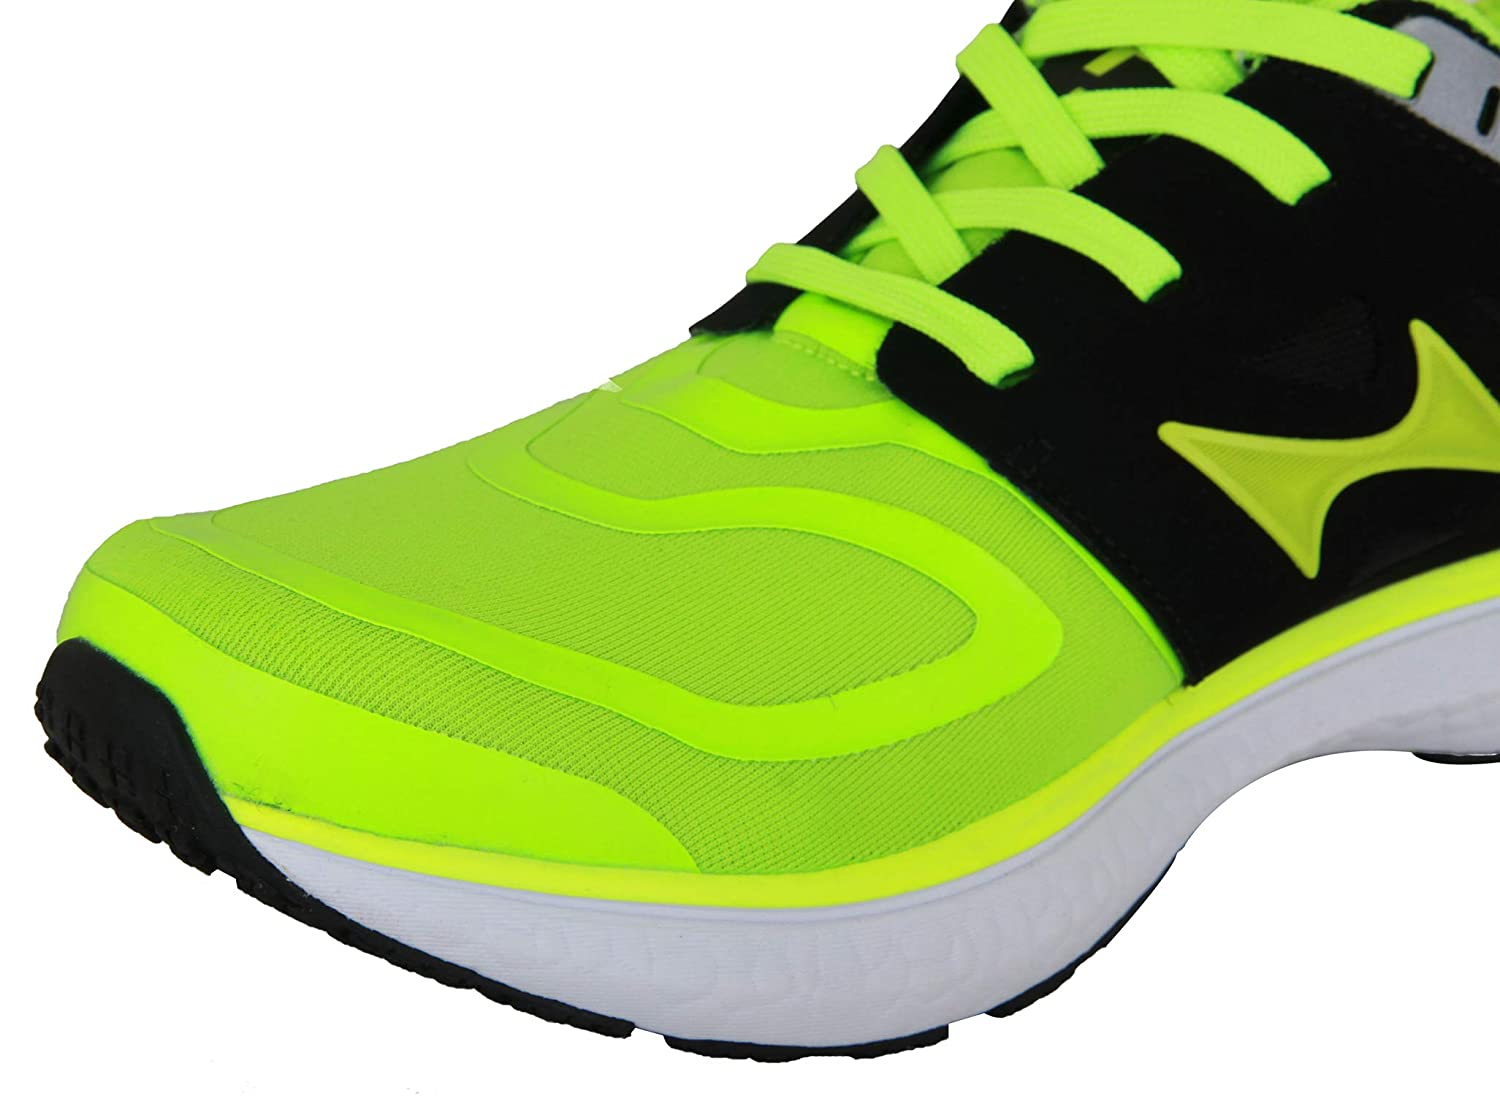 HEALTH Momens Mens Lightweight Breathable Running Shoes Athletic Walking Shoes Jogging Hiking Sneakers 5020